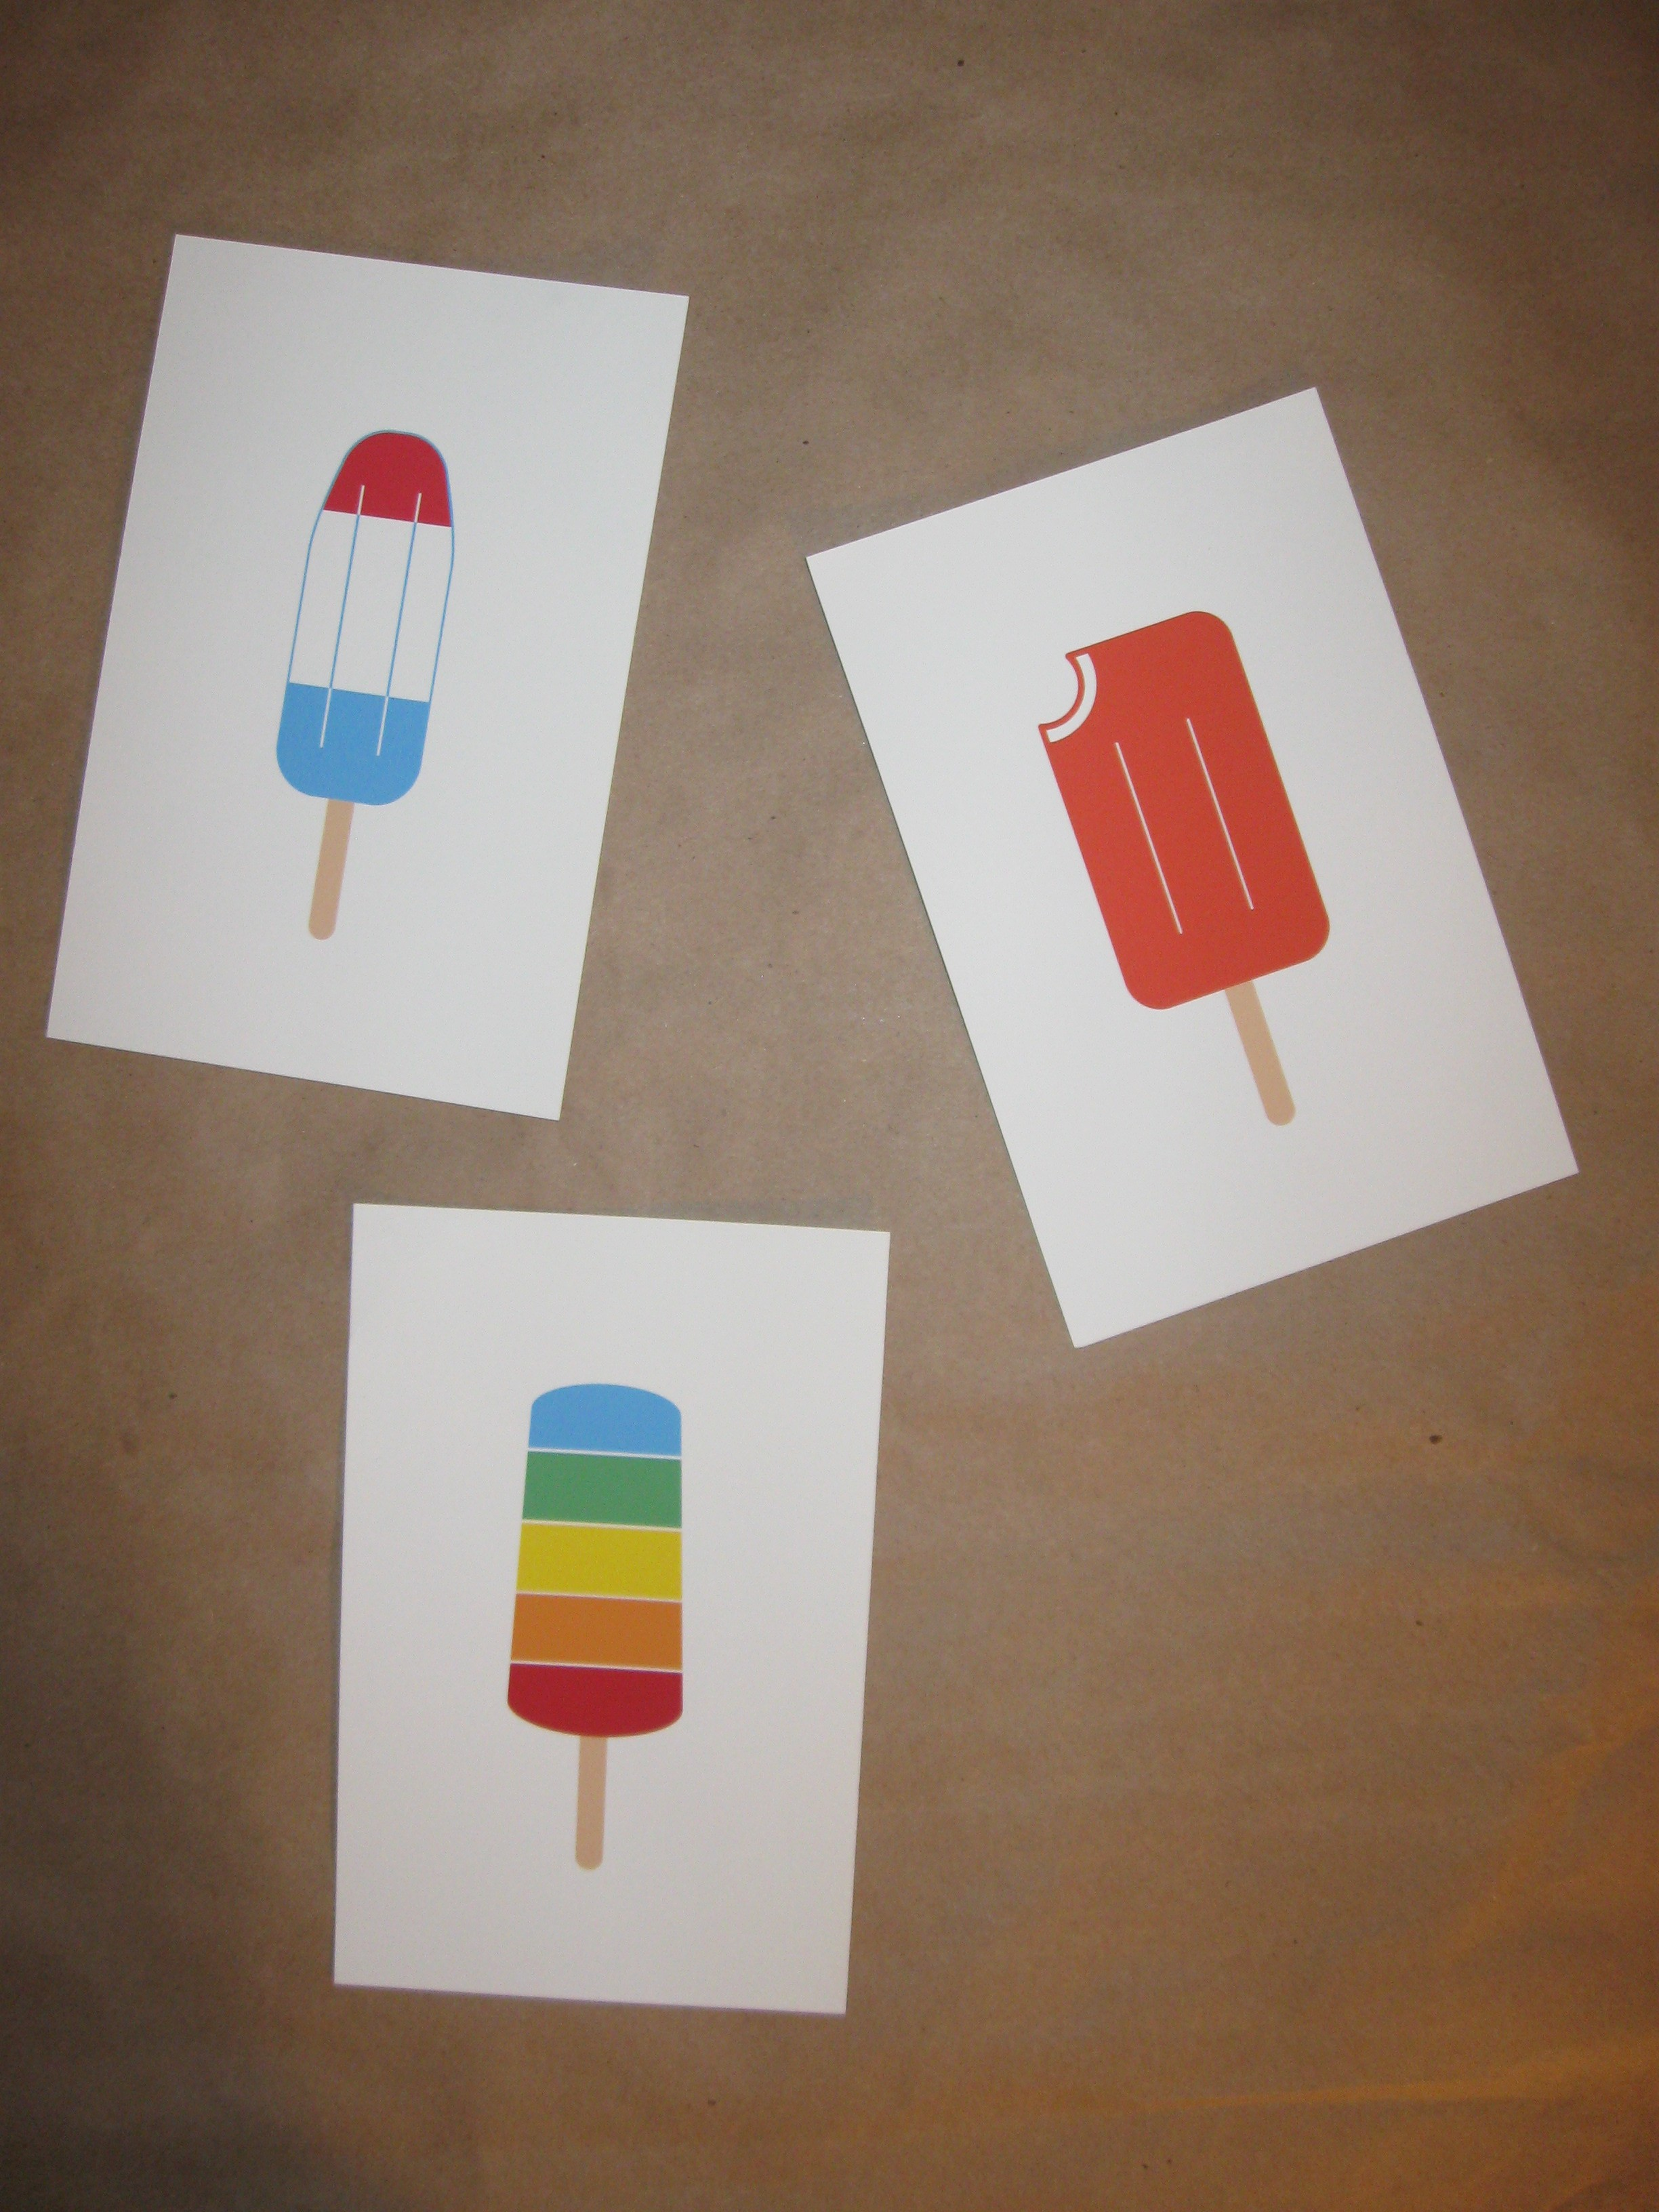 Popsicle art prints BEFORE framing painting project